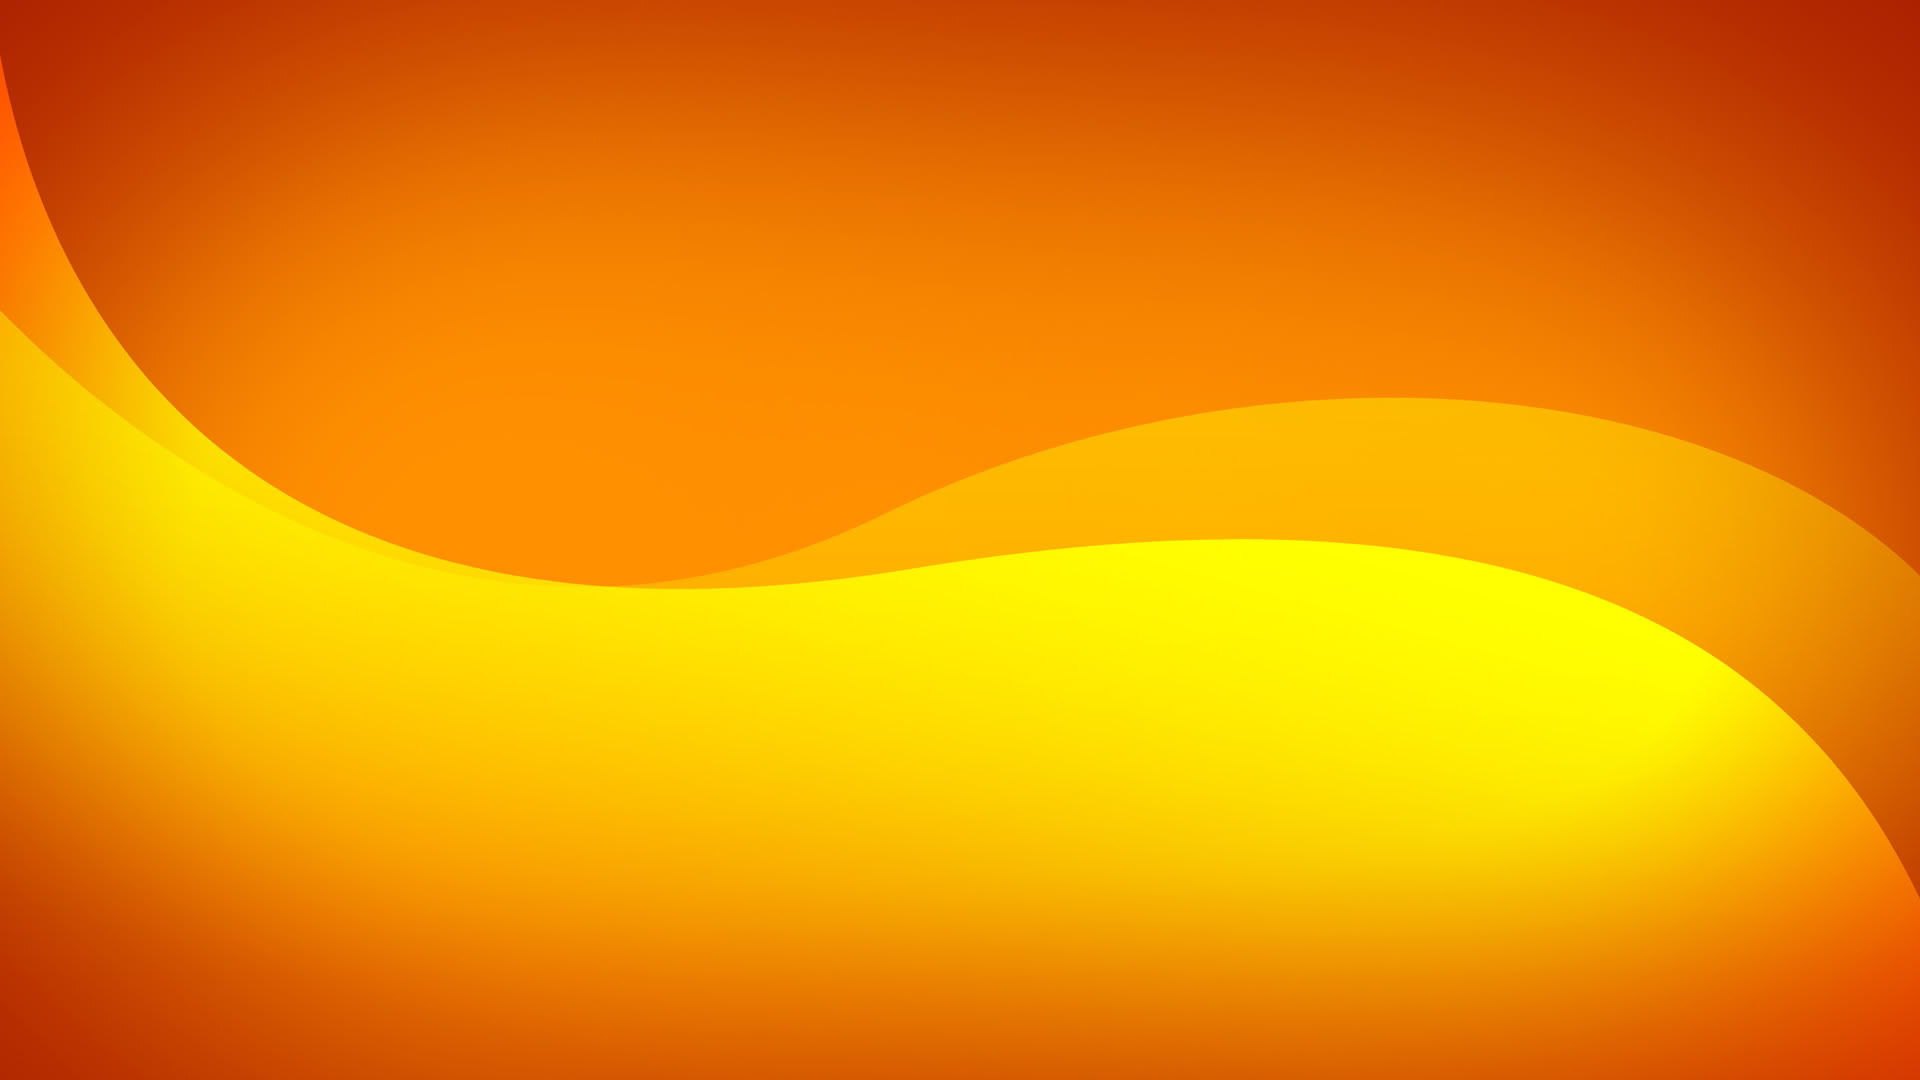 Orange Wallpaper   Colors Wallpaper 34511659 1920x1080